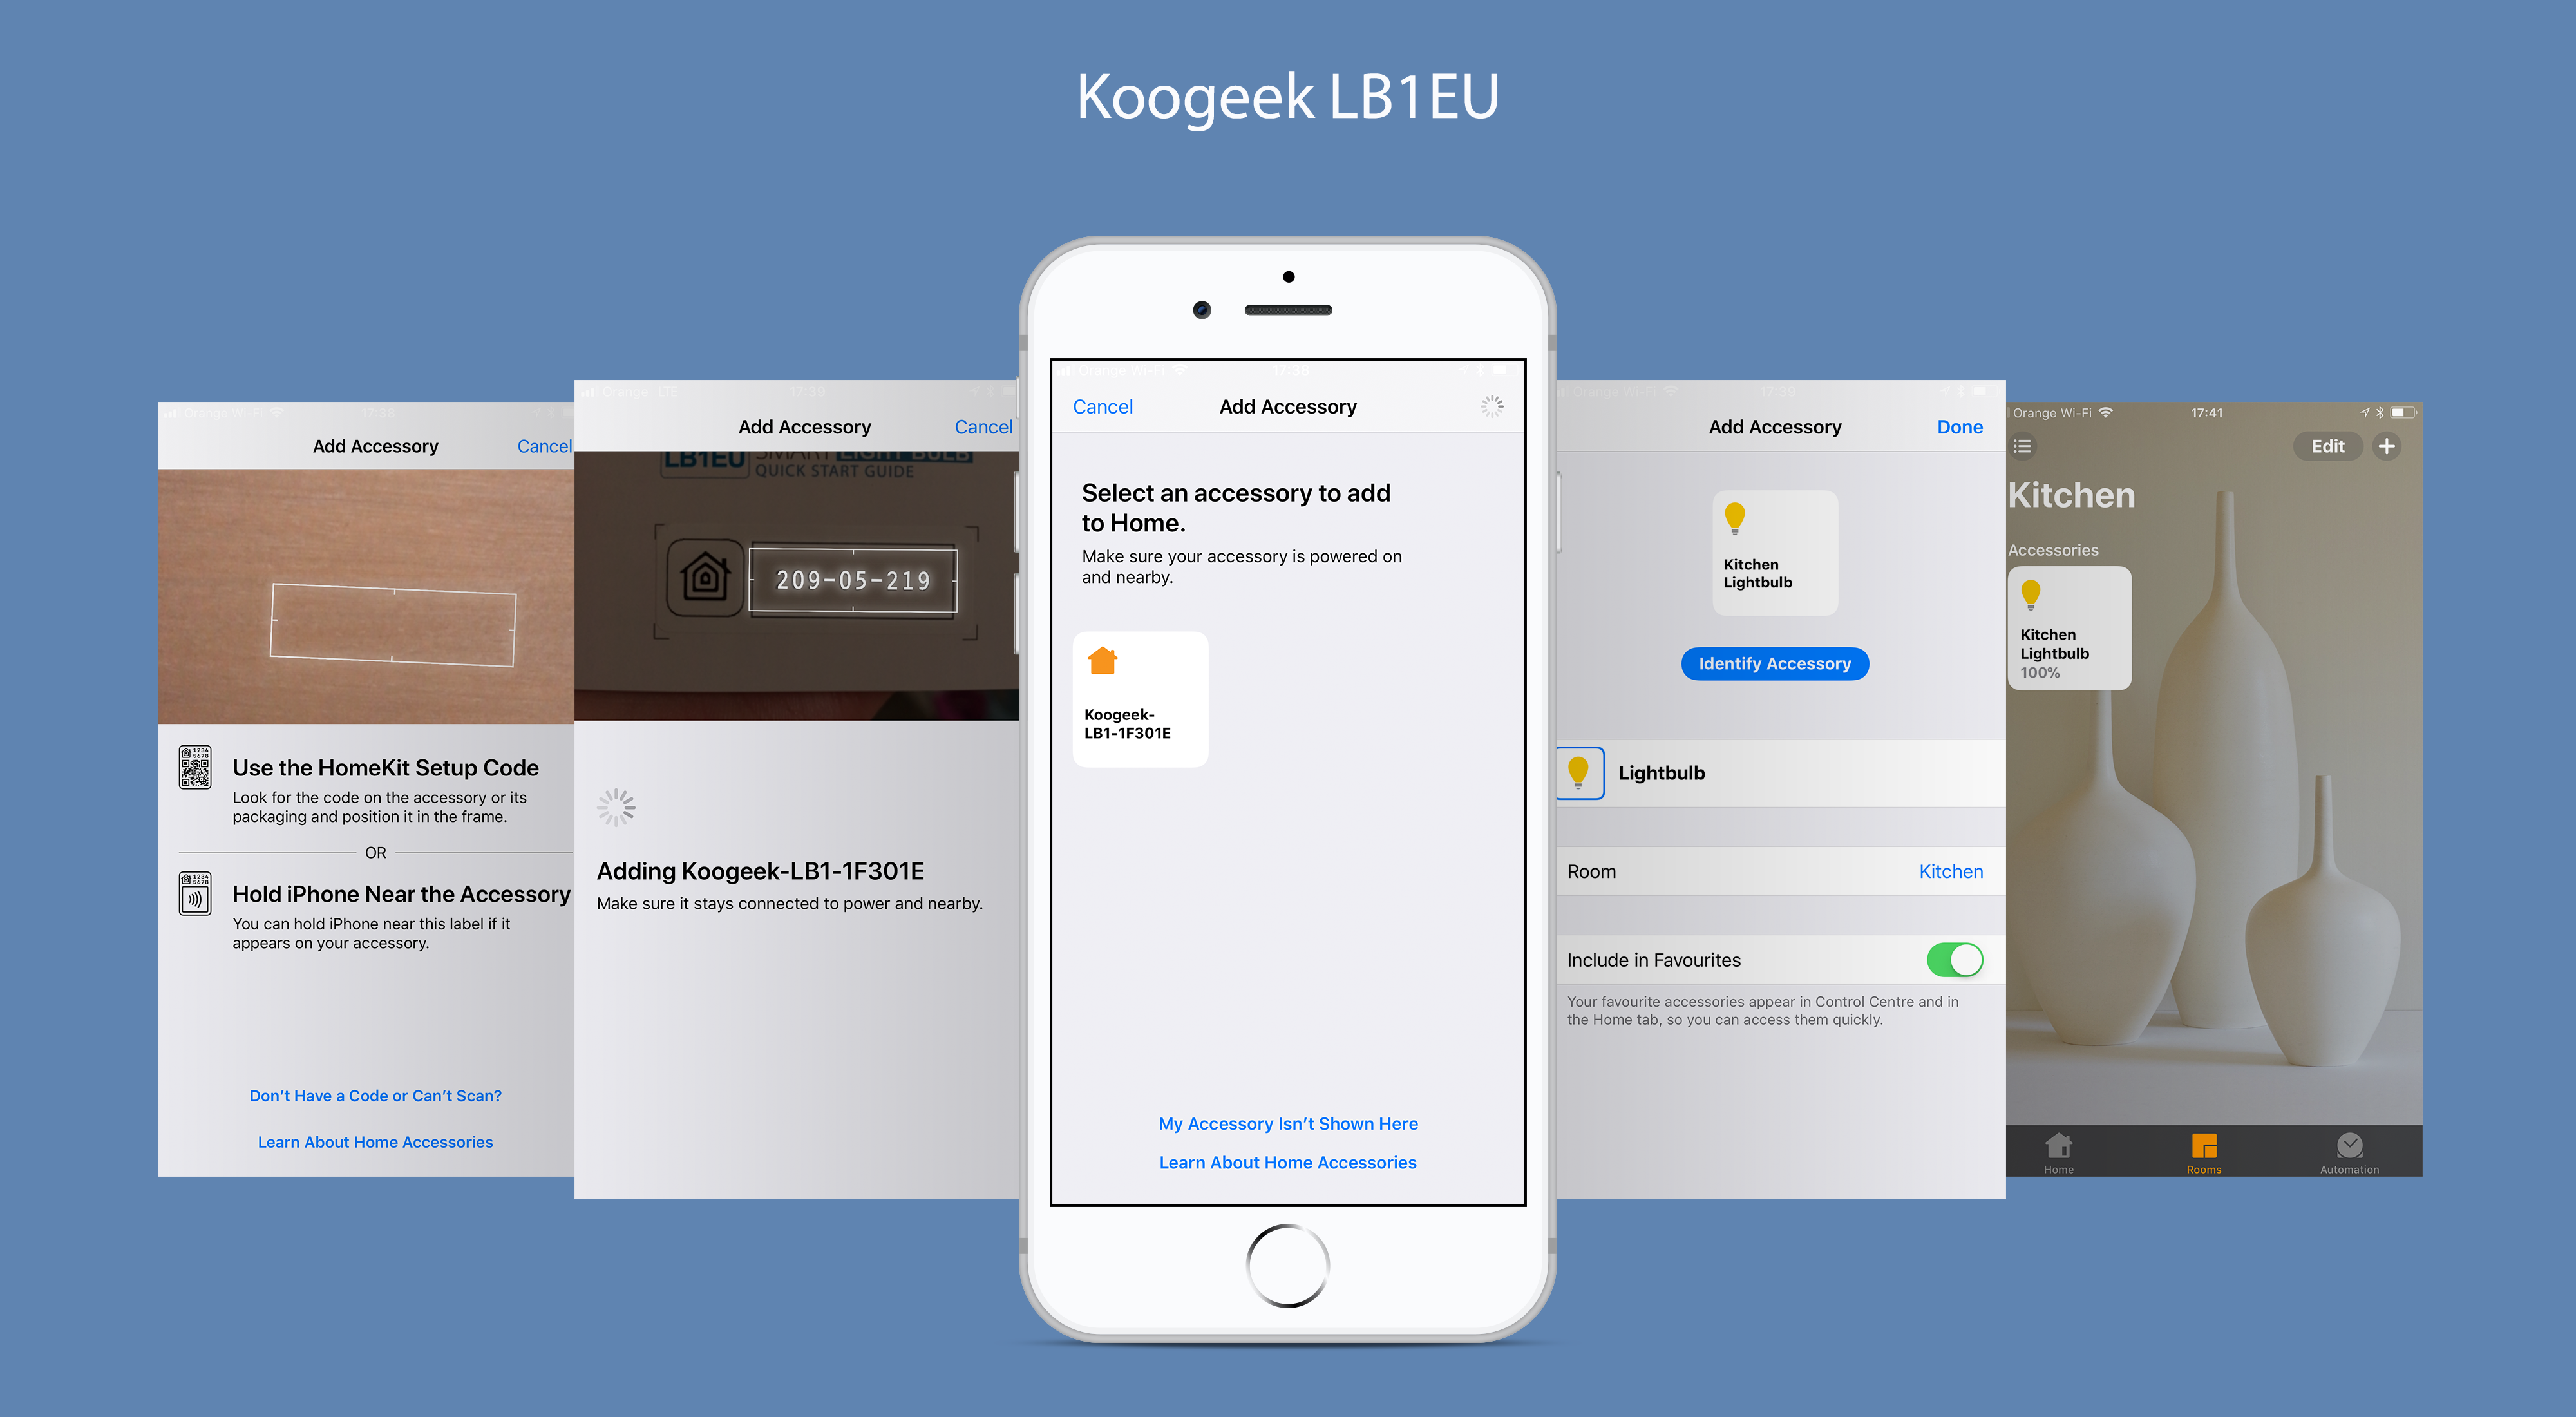 Adding Koogeek LB1EU to HomeKit on an iPhone 8 Plus